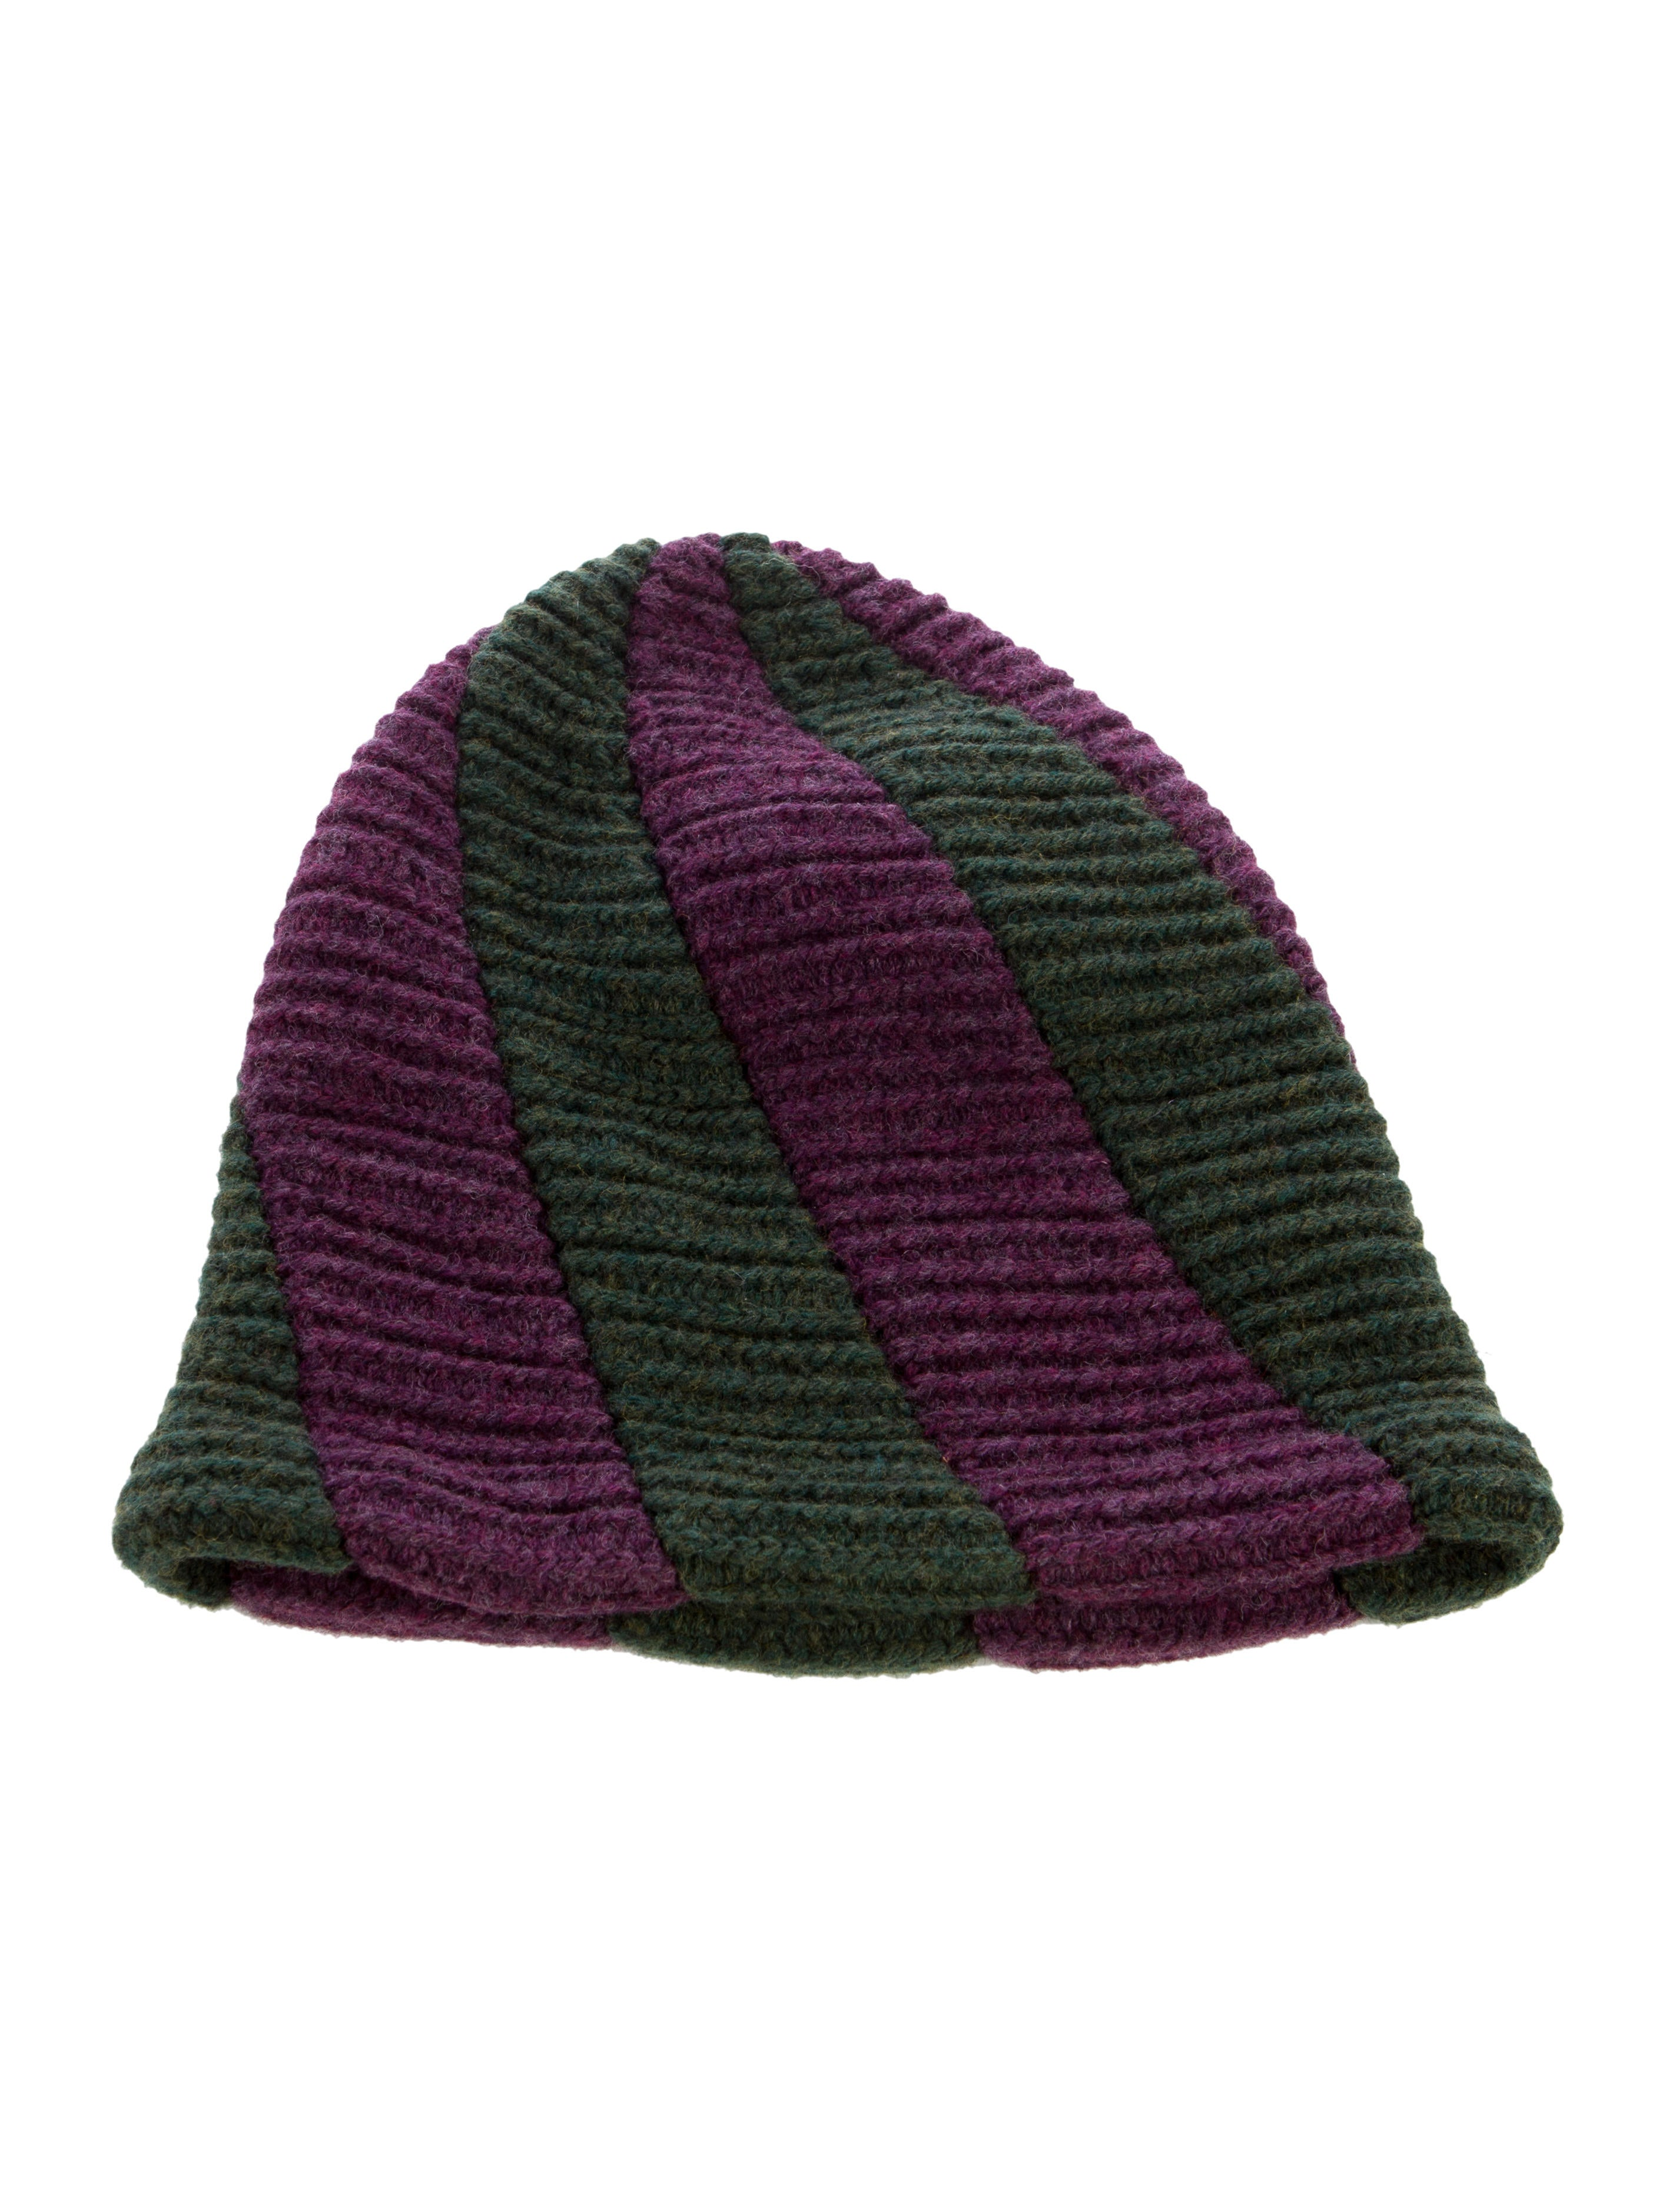 Issey Miyake Rib Knit Beanie - Accessories - ISS20722 The RealReal